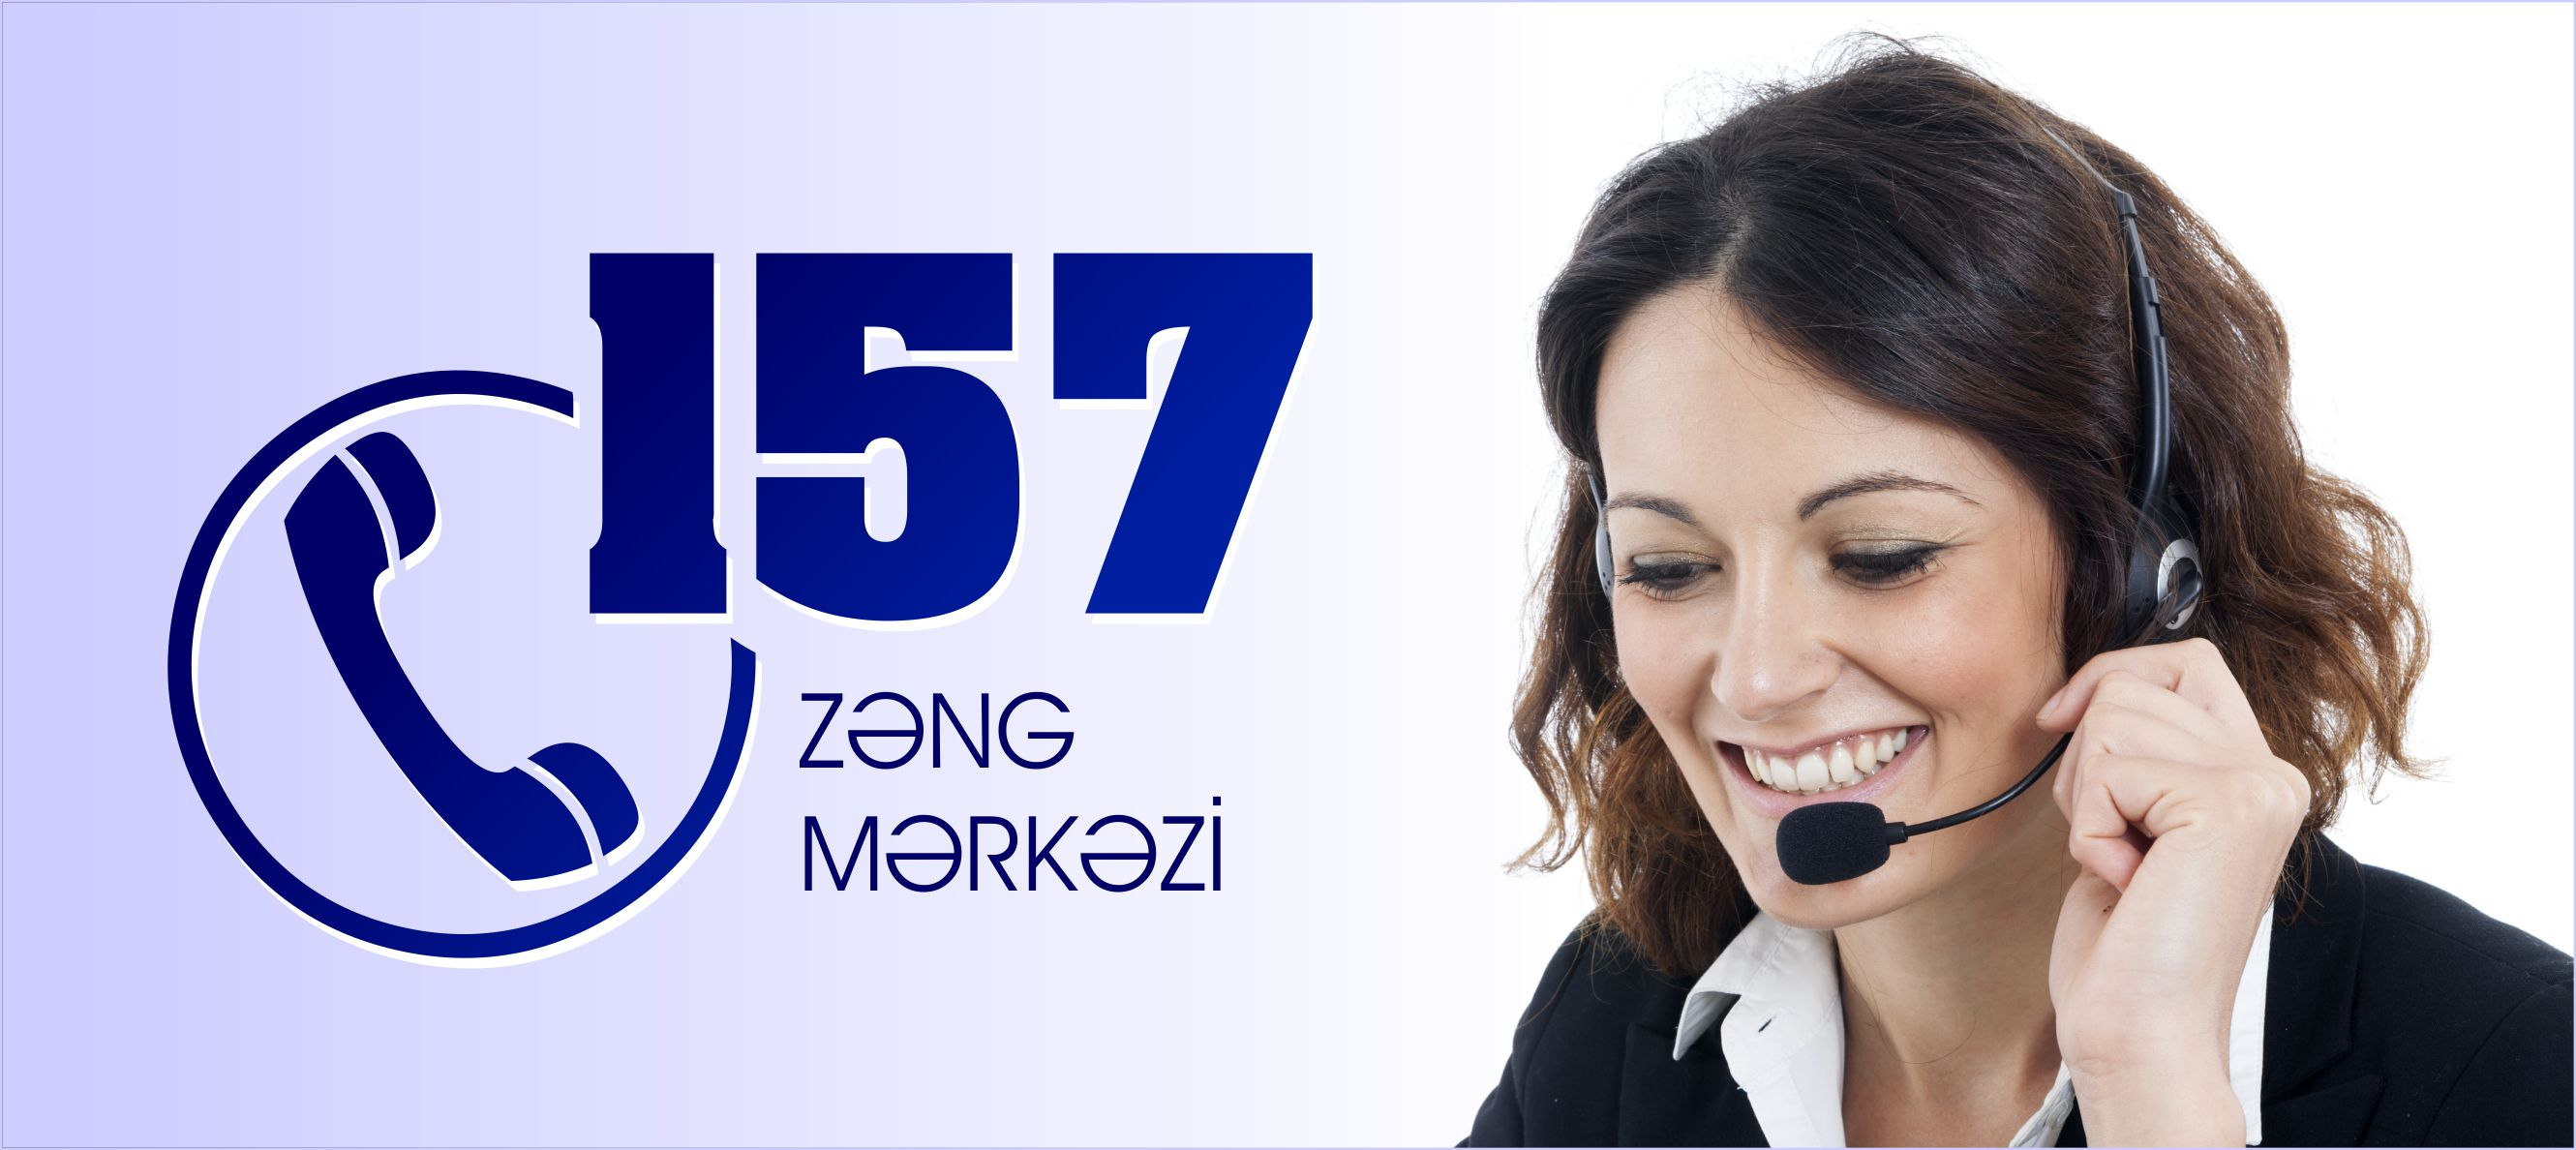 Citizens can now call 157 Call Center concerning registration of